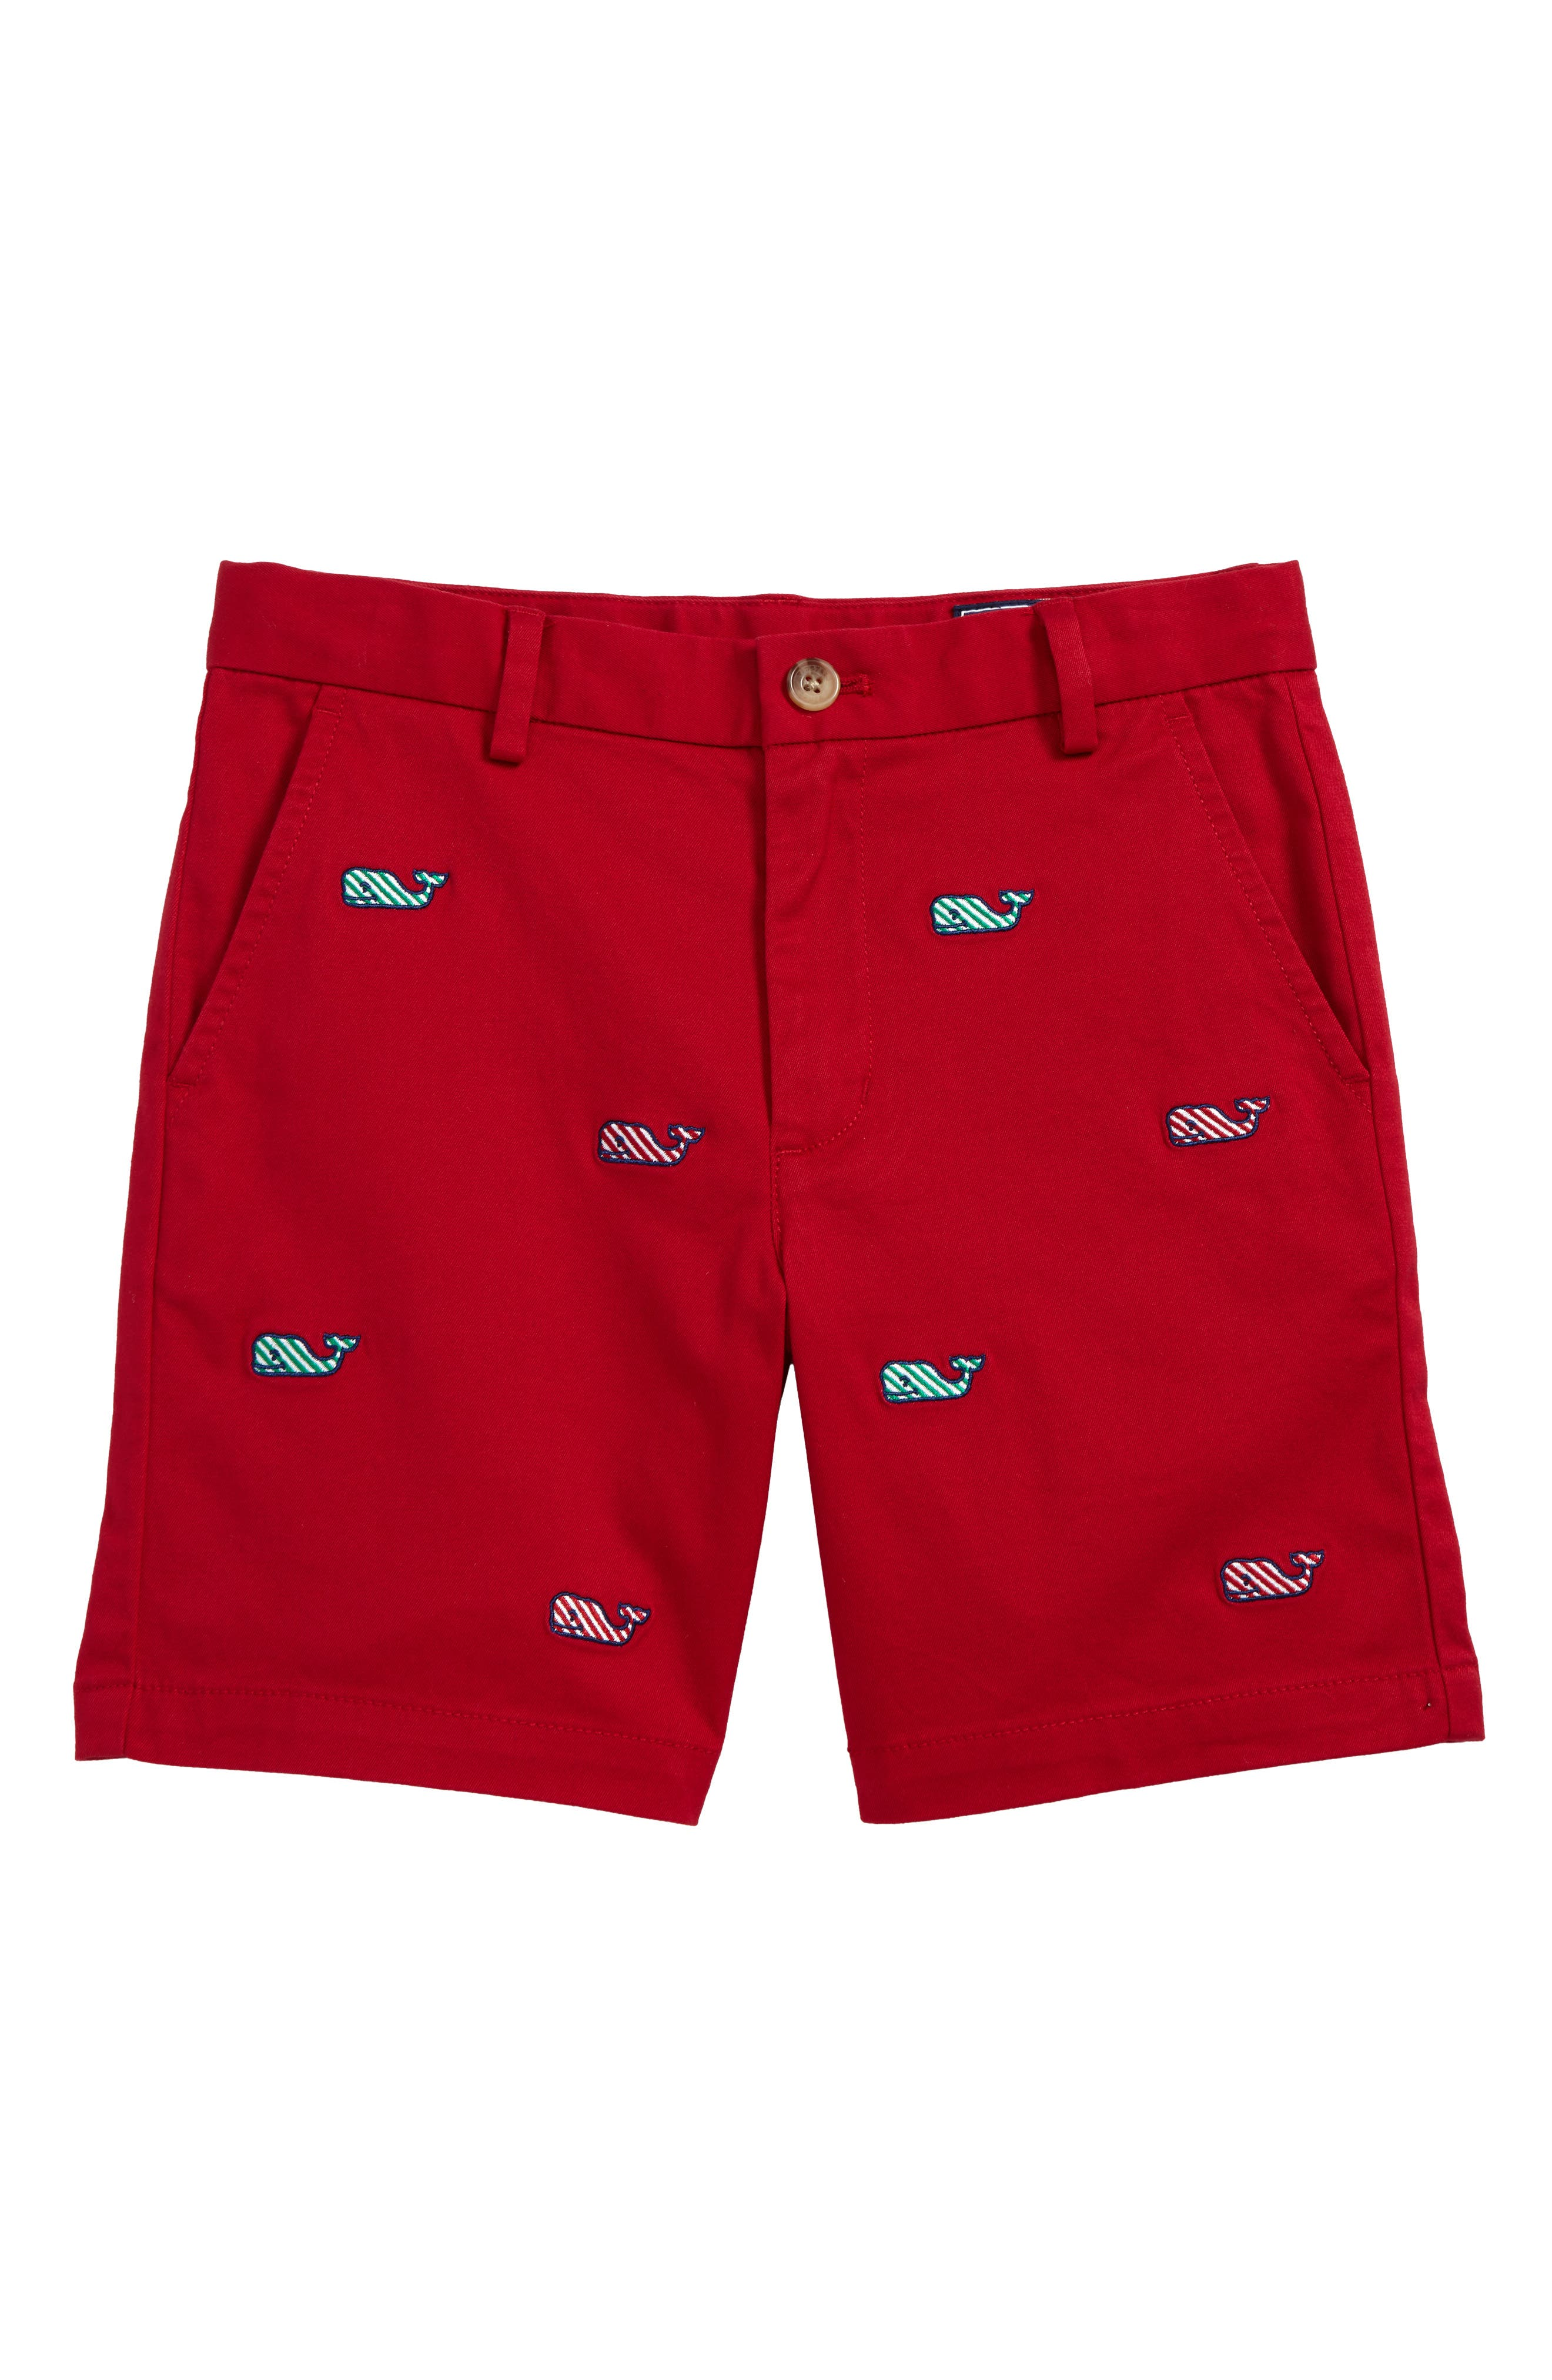 Main Image - vineyard vines Candy Cane Whale Breaker Shorts (Toddler Boys & Little Boys)